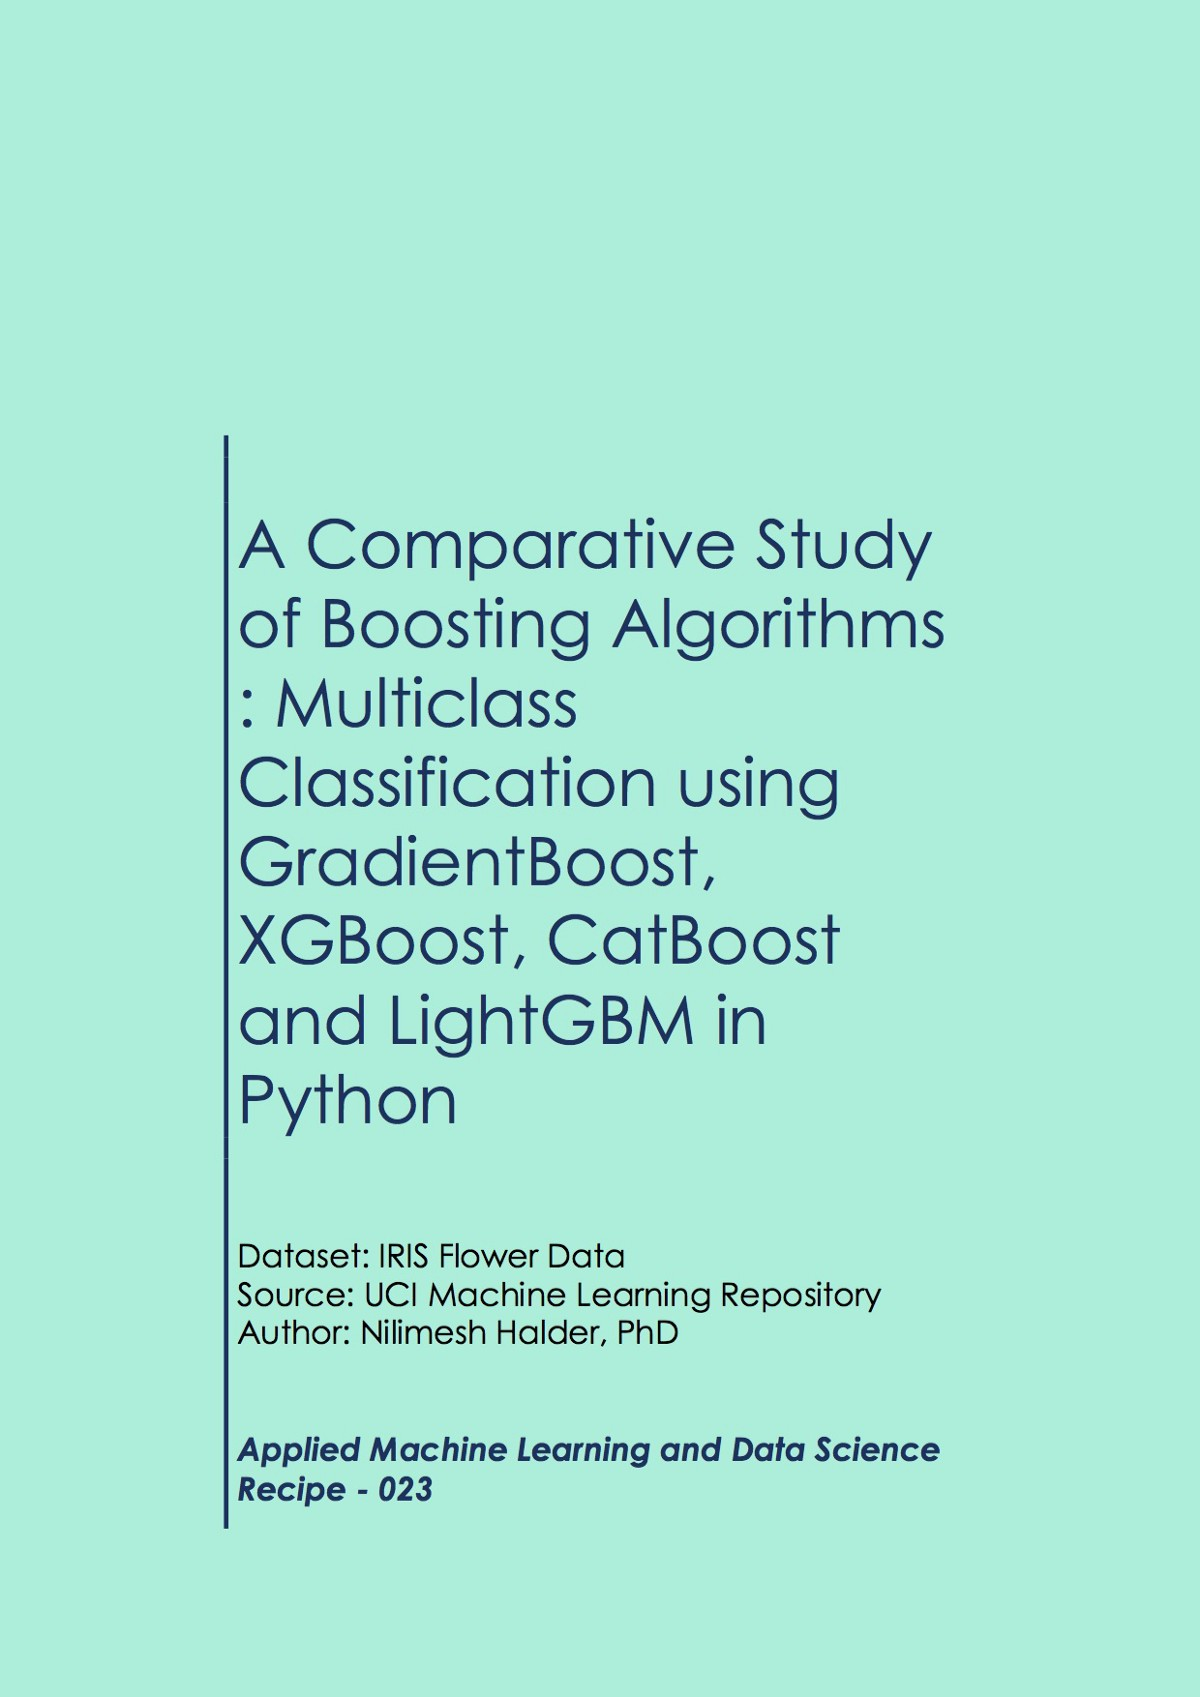 A Comparative Study of Boosting Algorithms: Multiclass